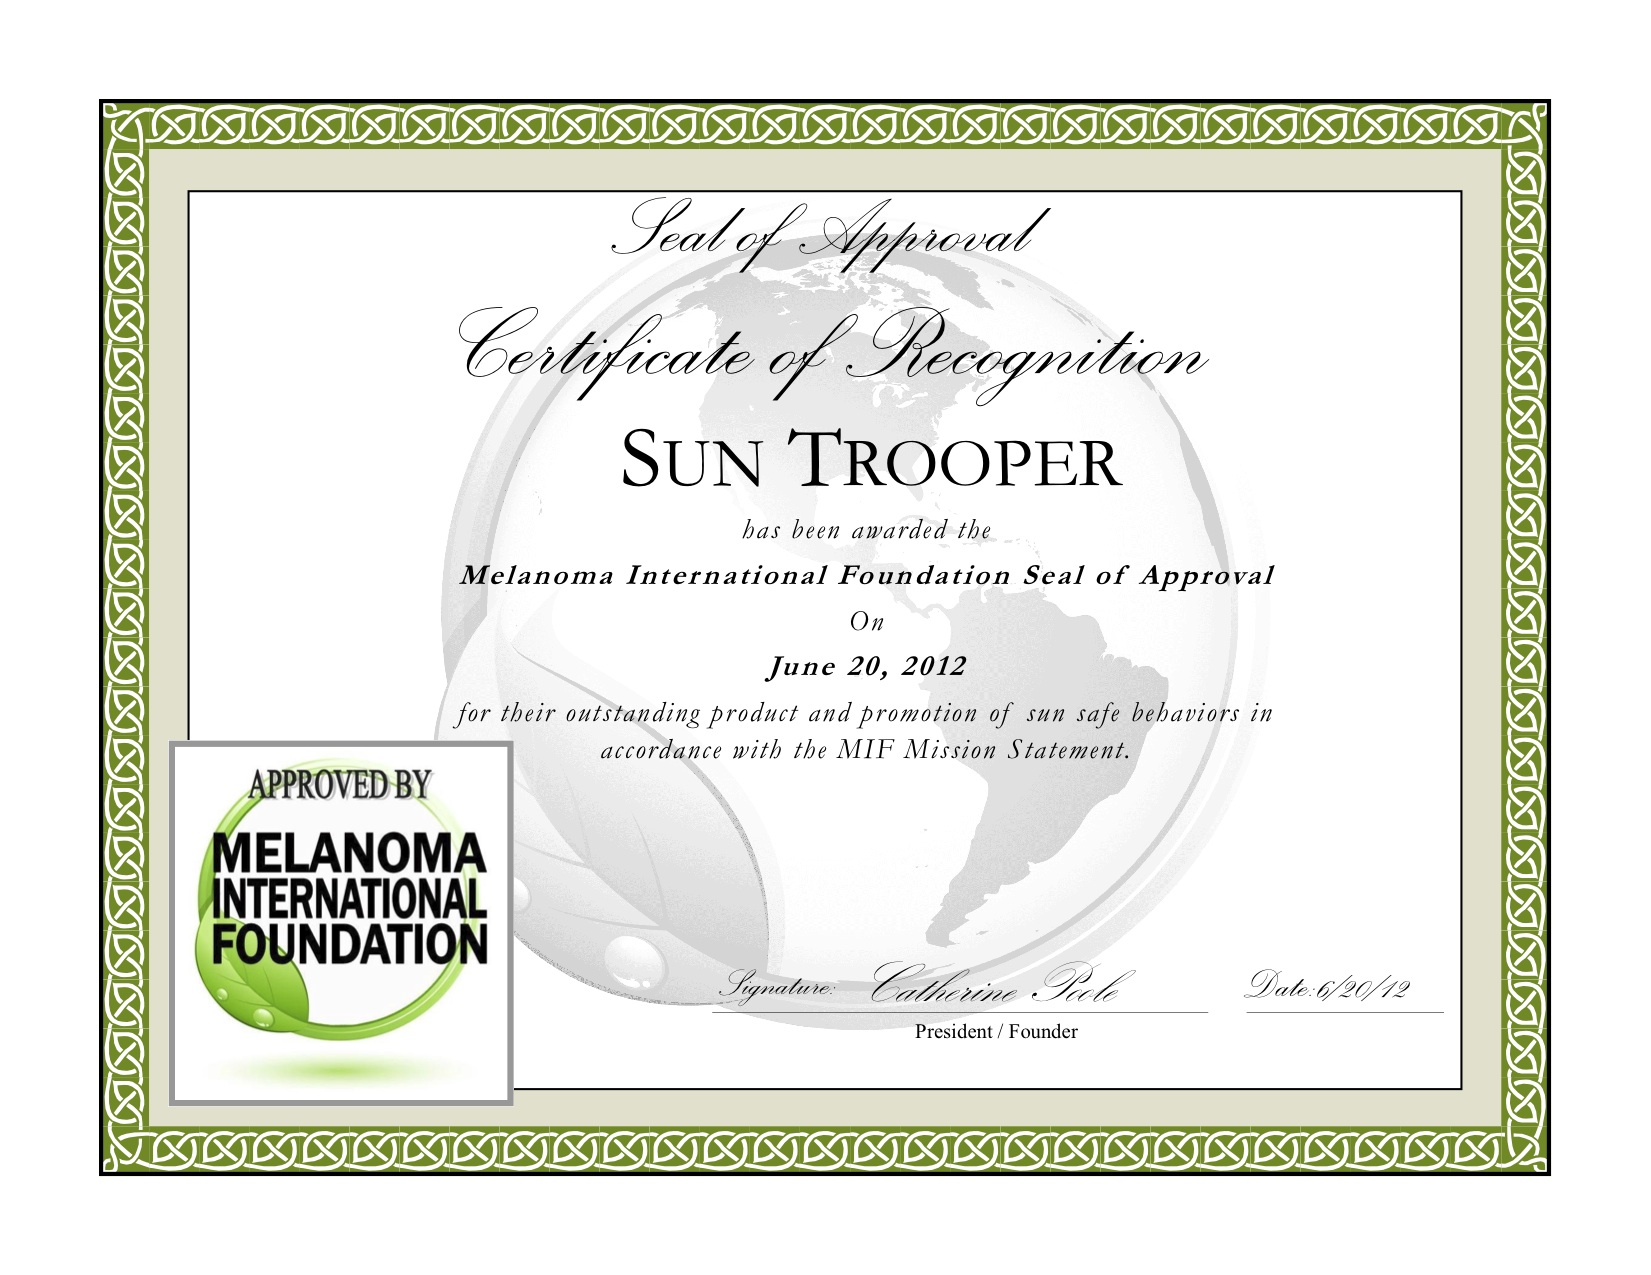 Seal of Approval for SunTrooper® from Melanoma International Foundation